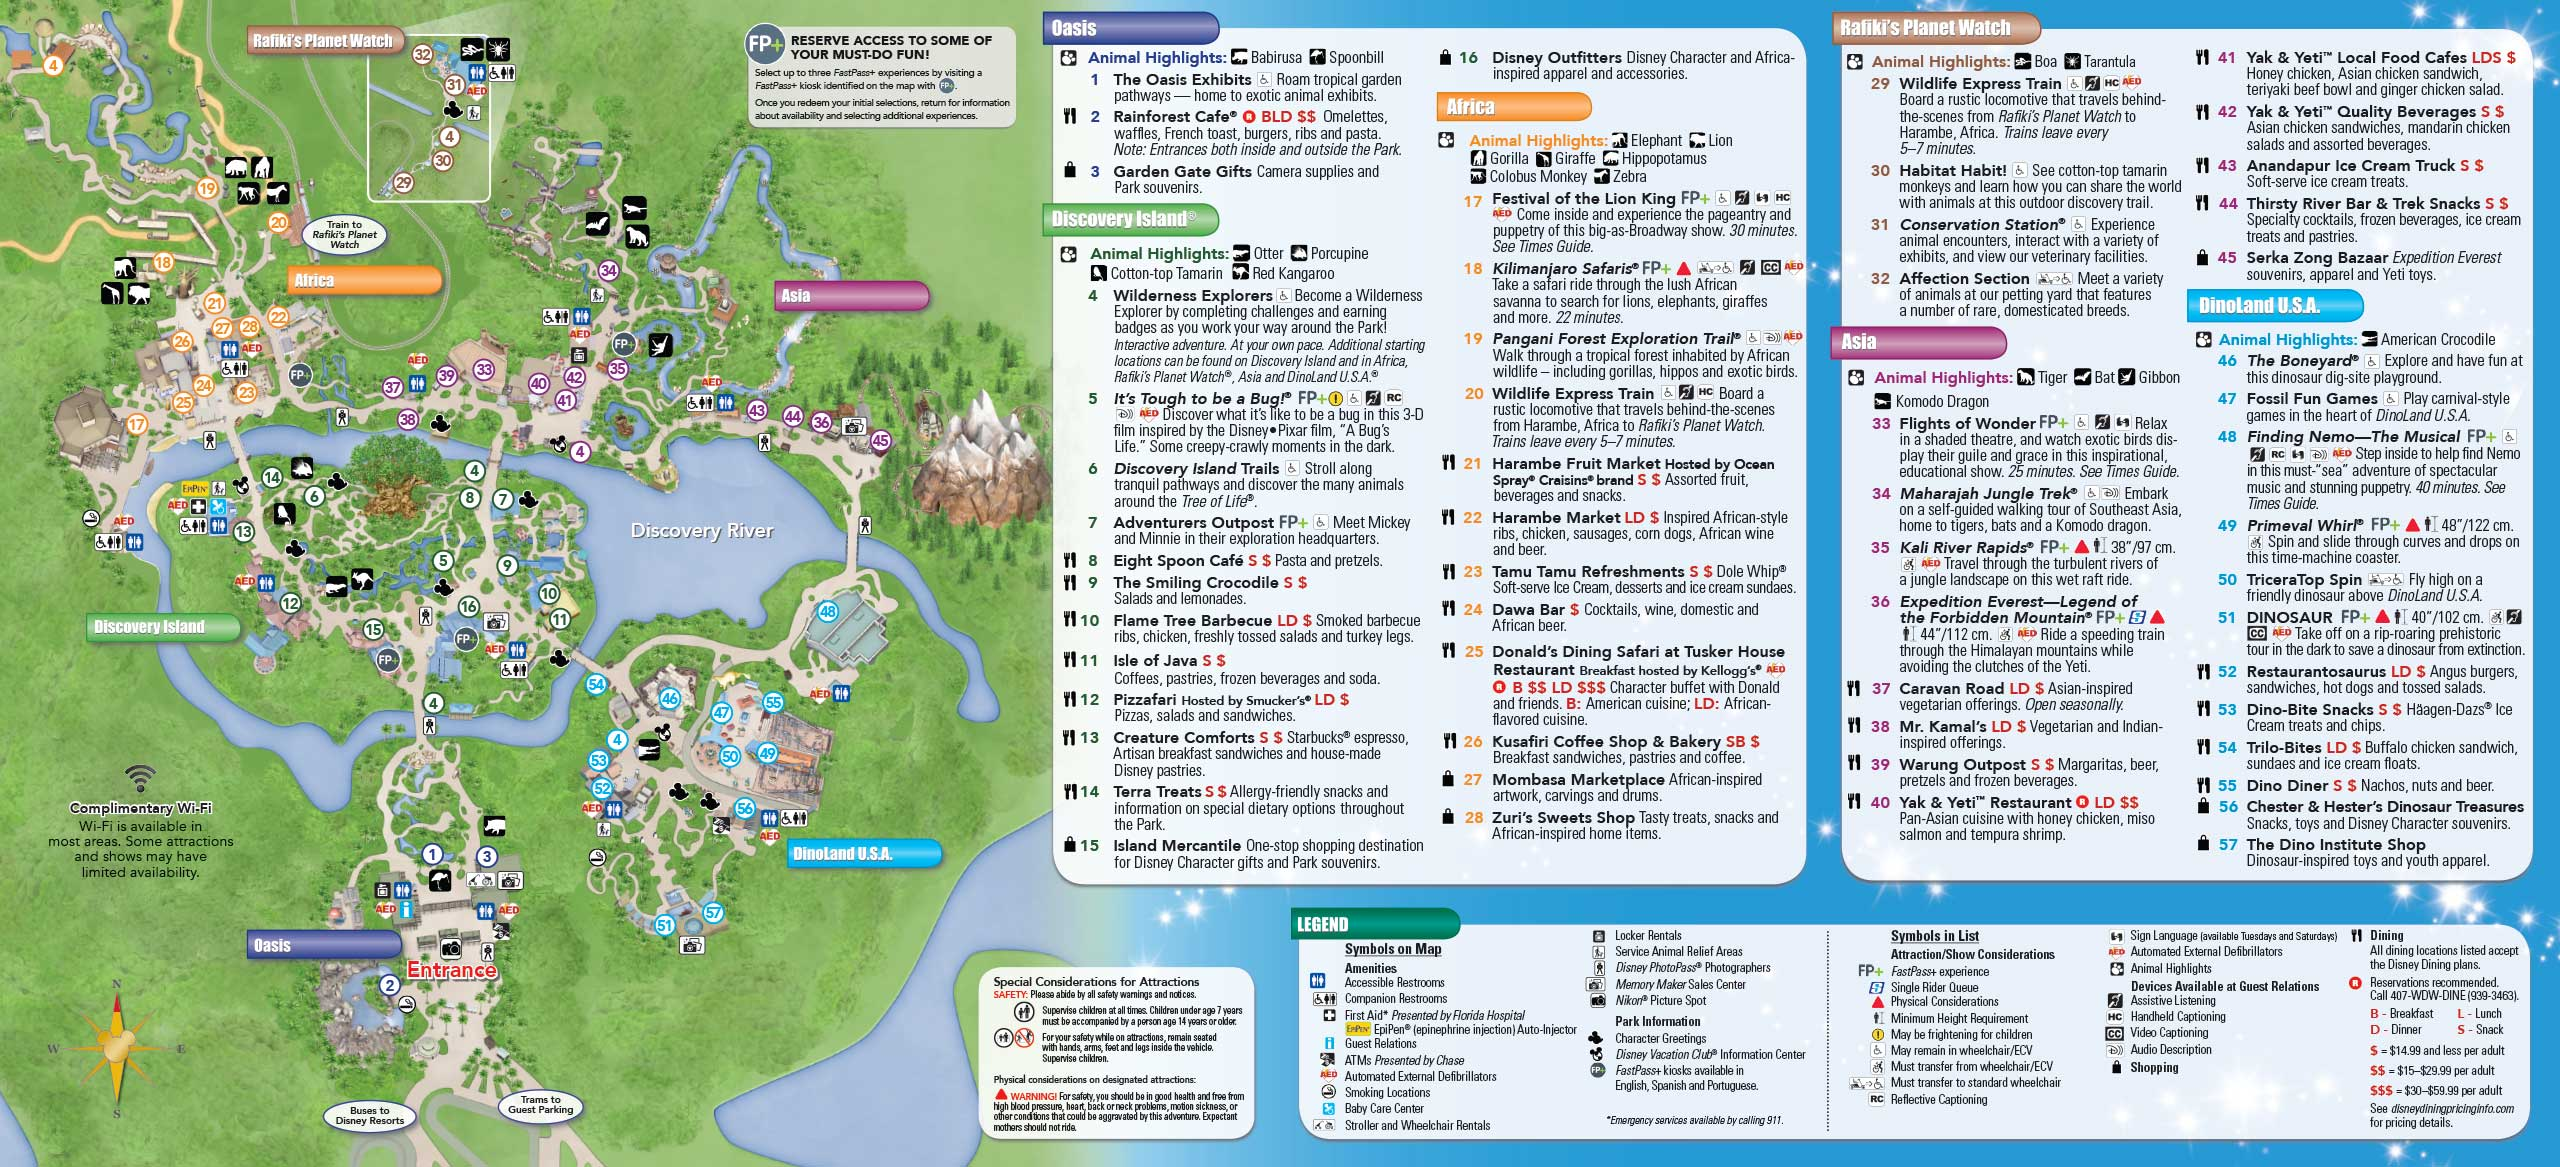 January 2016 Walt Disney World Park Maps - Photo 12 of 12